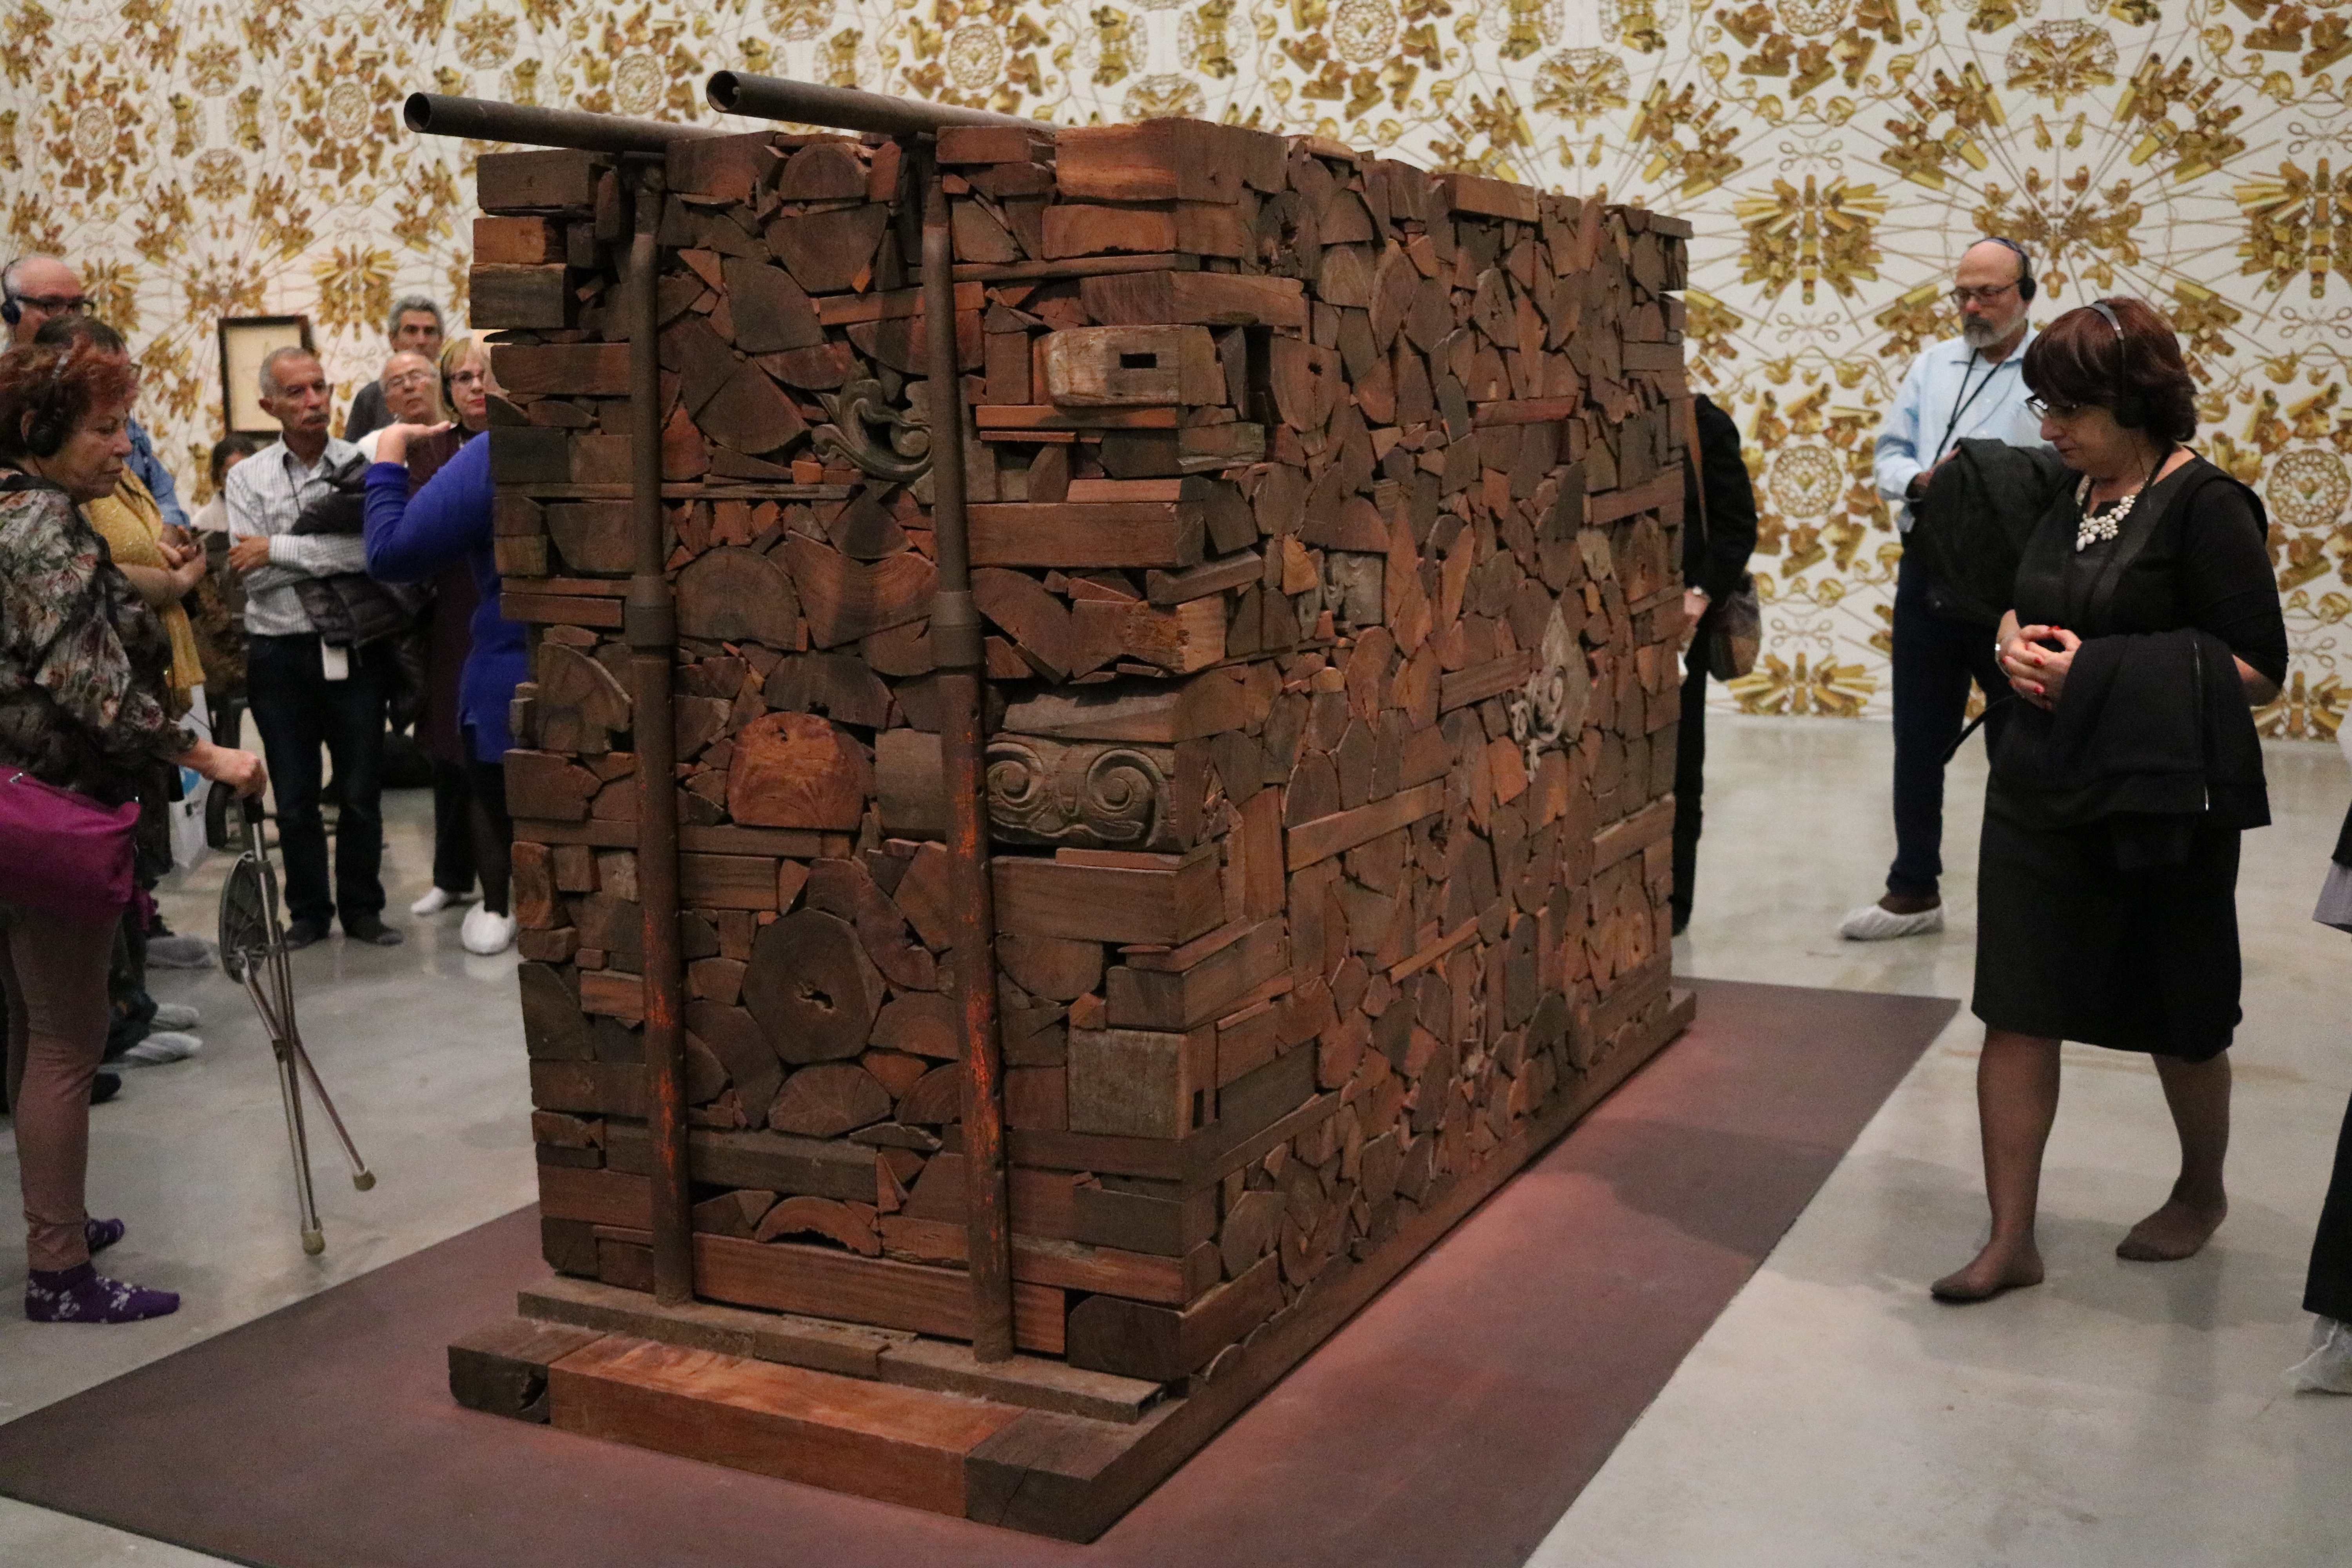 Ai Weiwei #Exhibition: Maybe, Maybe Not, June 2 2017 - March 3 2018, The Israel Museum, Jerusalem